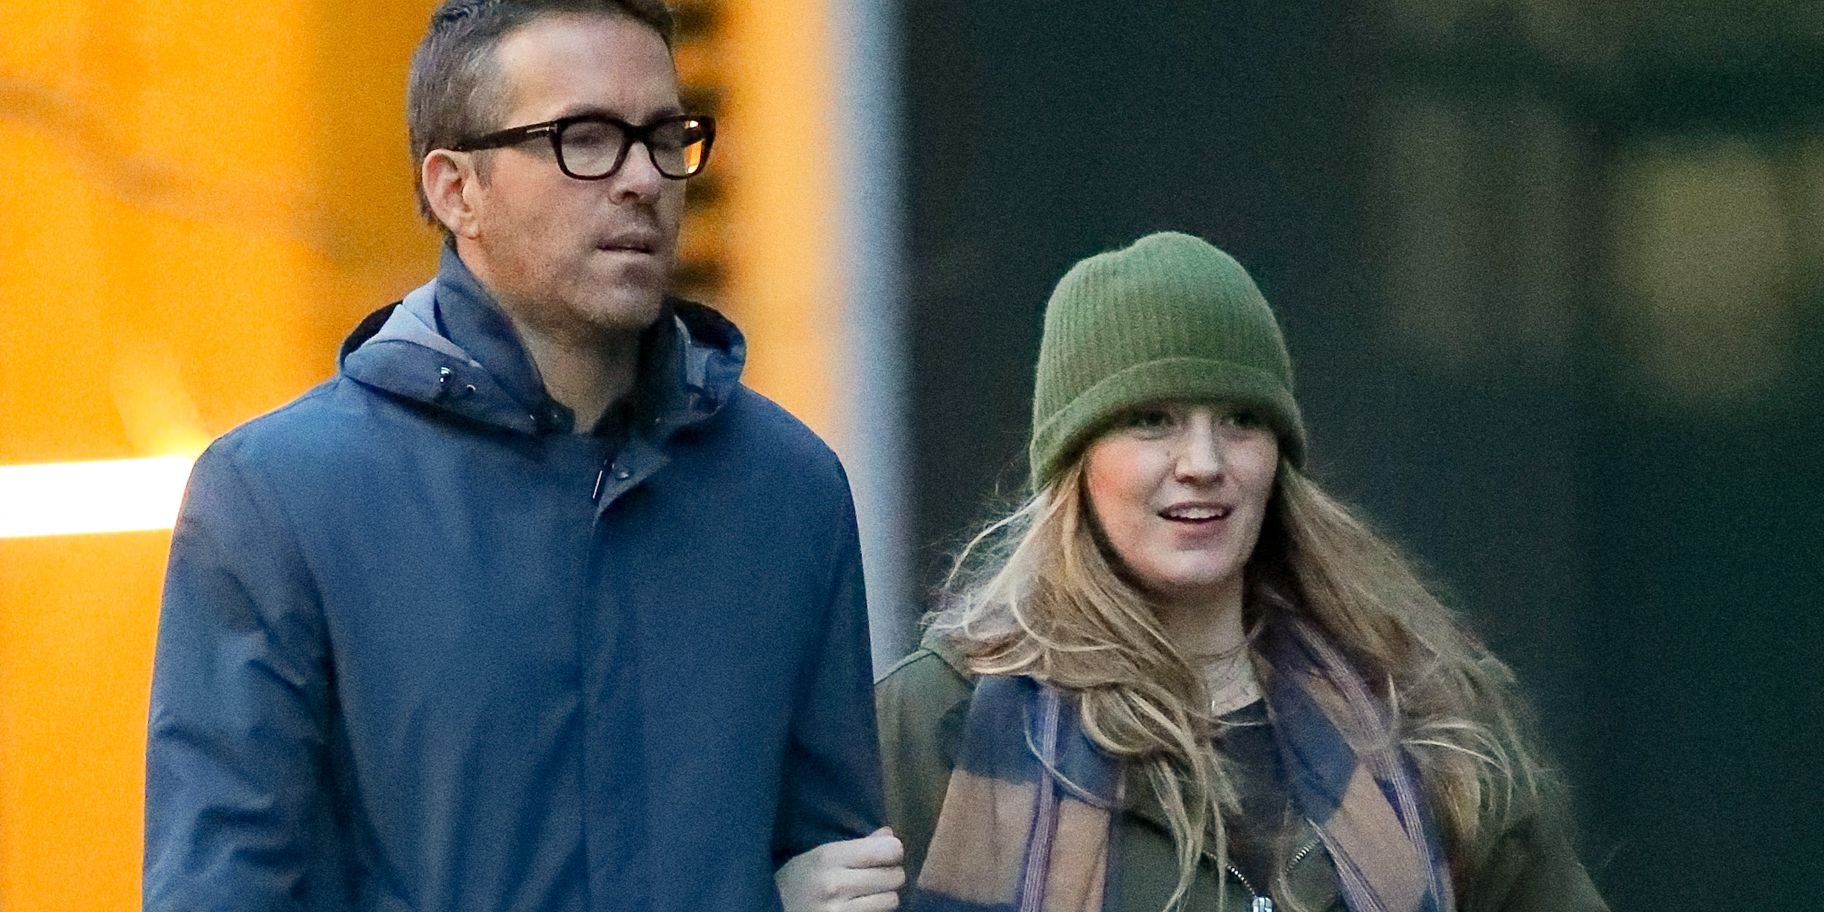 Blake Lively and Ryan Reynolds Take a Stroll in New York City Together